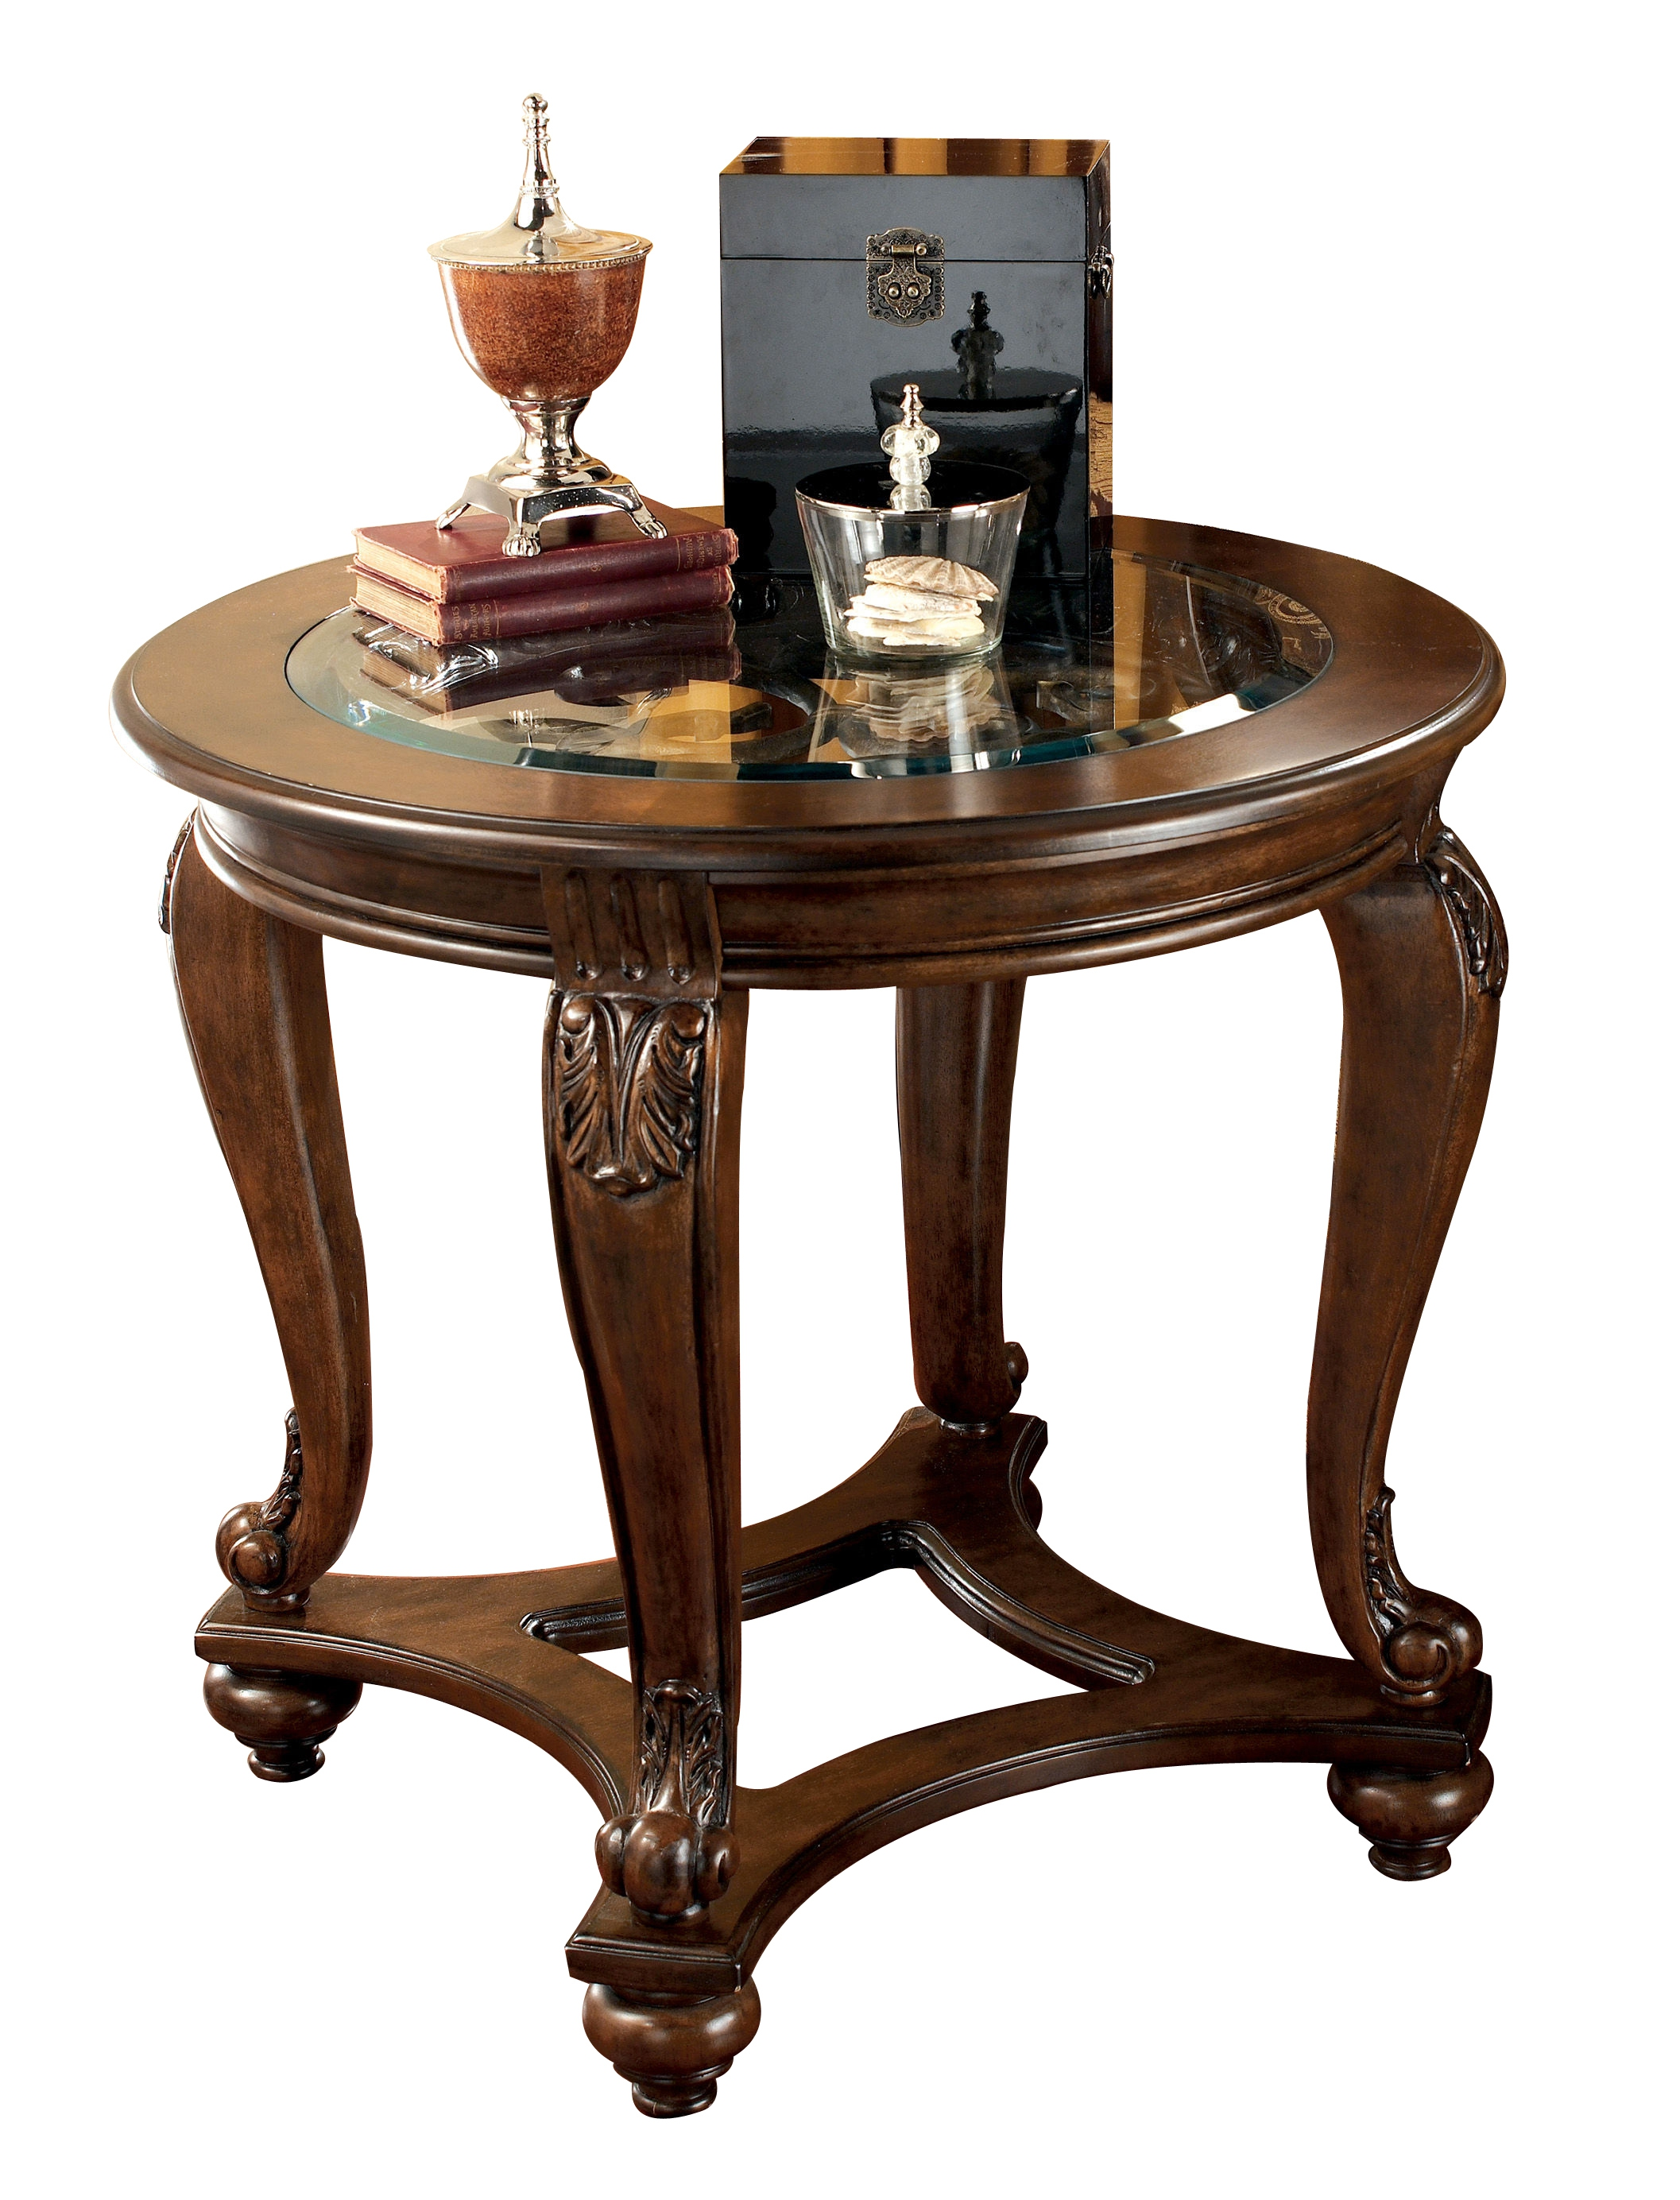 ashley furniture norcastle end table the classy home wbg tables coffee sofa click enlarge best affordable vintage with lamp attached gold oval glass stanley bunk beds twin over